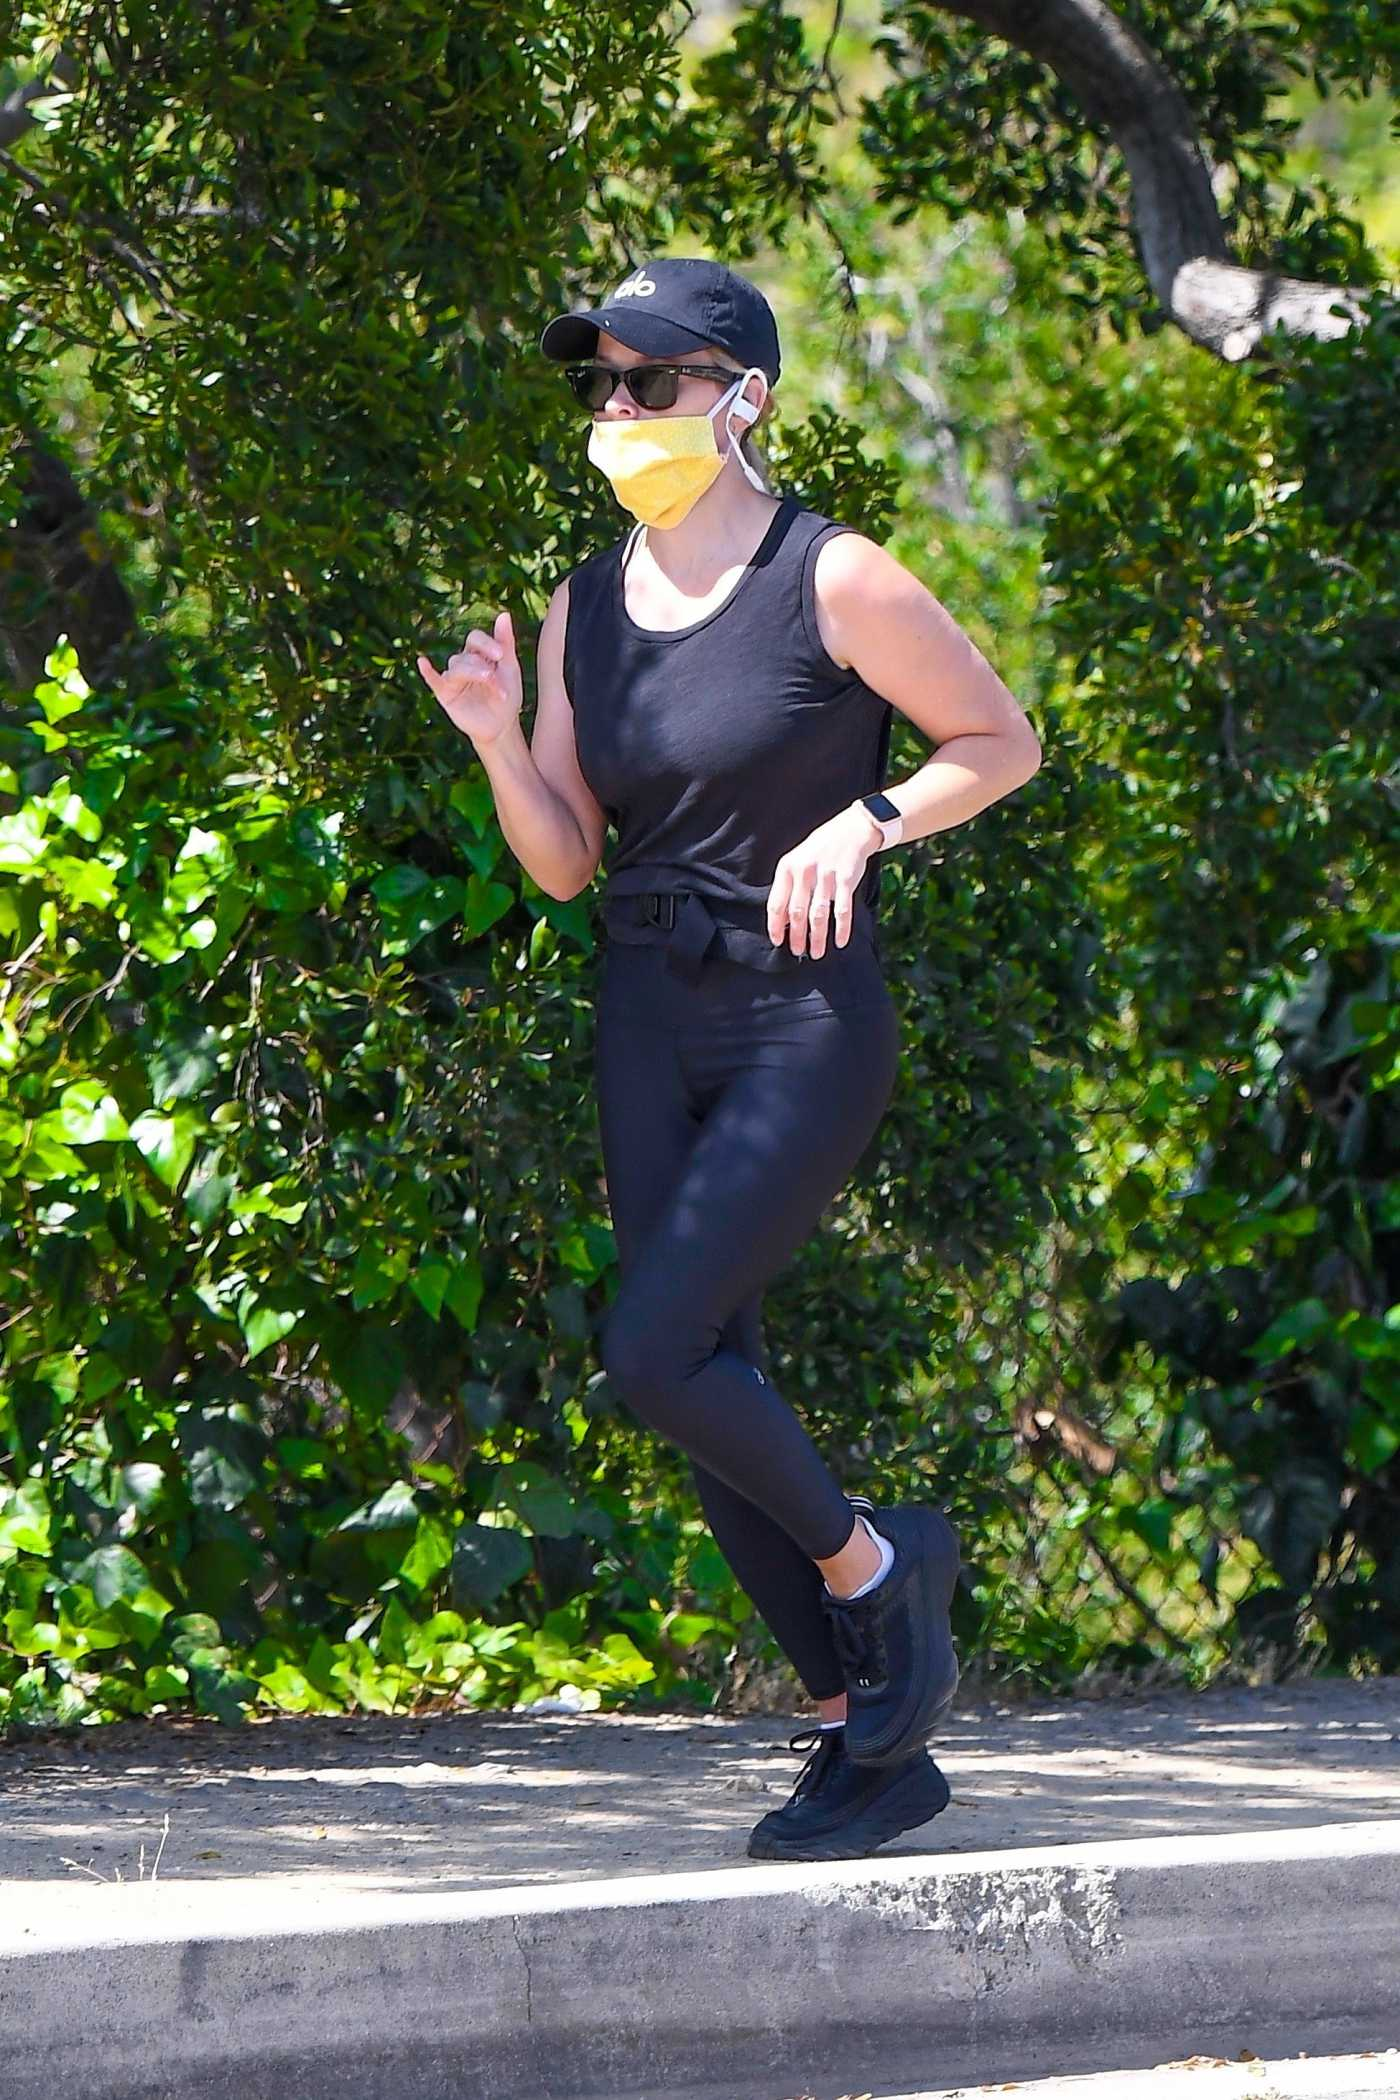 Reese Witherspoon in a Yellow Protective Mask Was Seen while Out for a Jog in Brentwood 05/22/2020